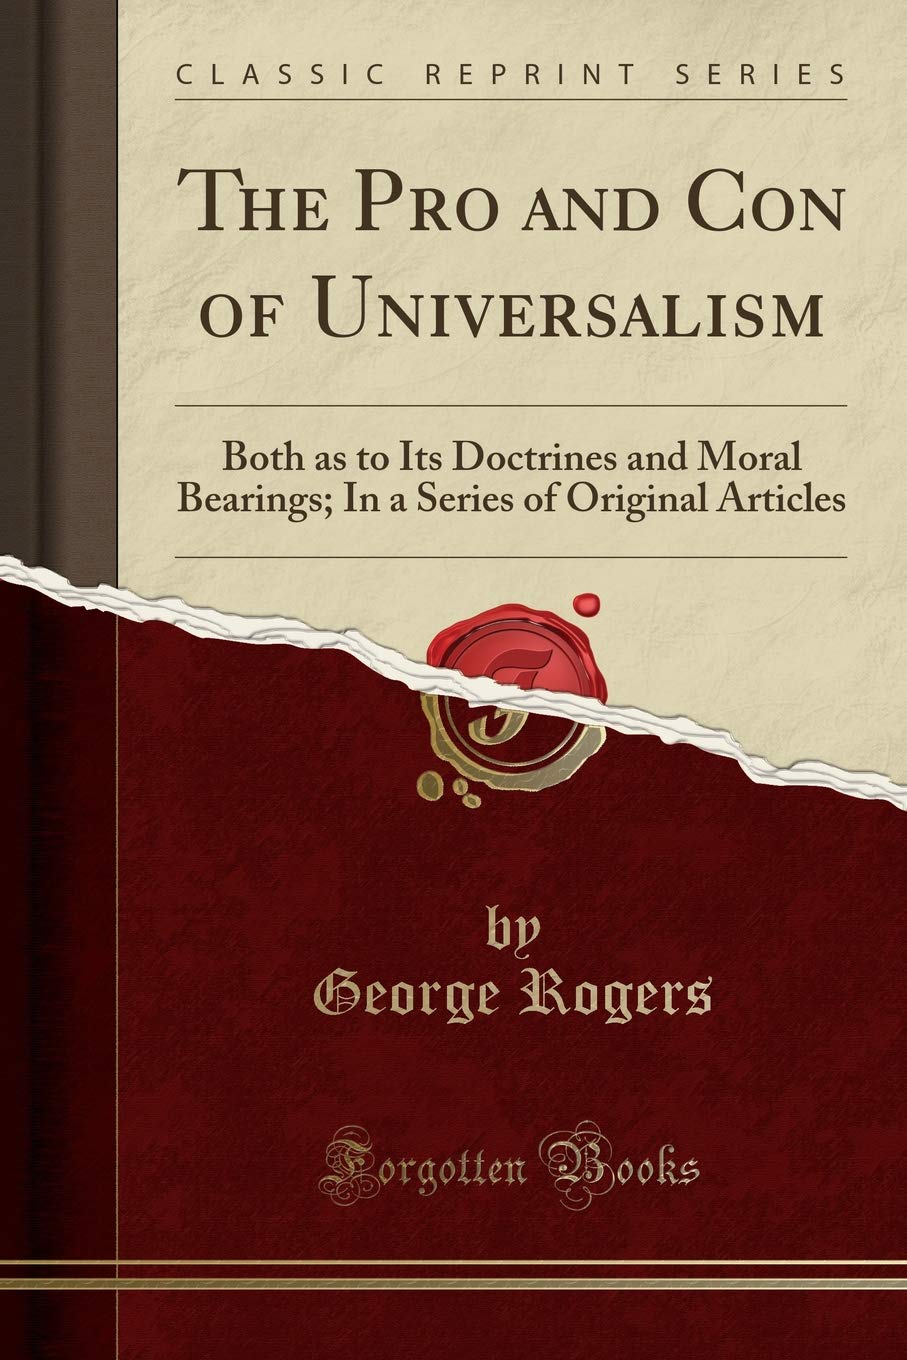 Download The Pro and Con of Universalism: Both as to Its Doctrines and Moral Bearings; In a Series of Original Articles (Classic Reprint) pdf